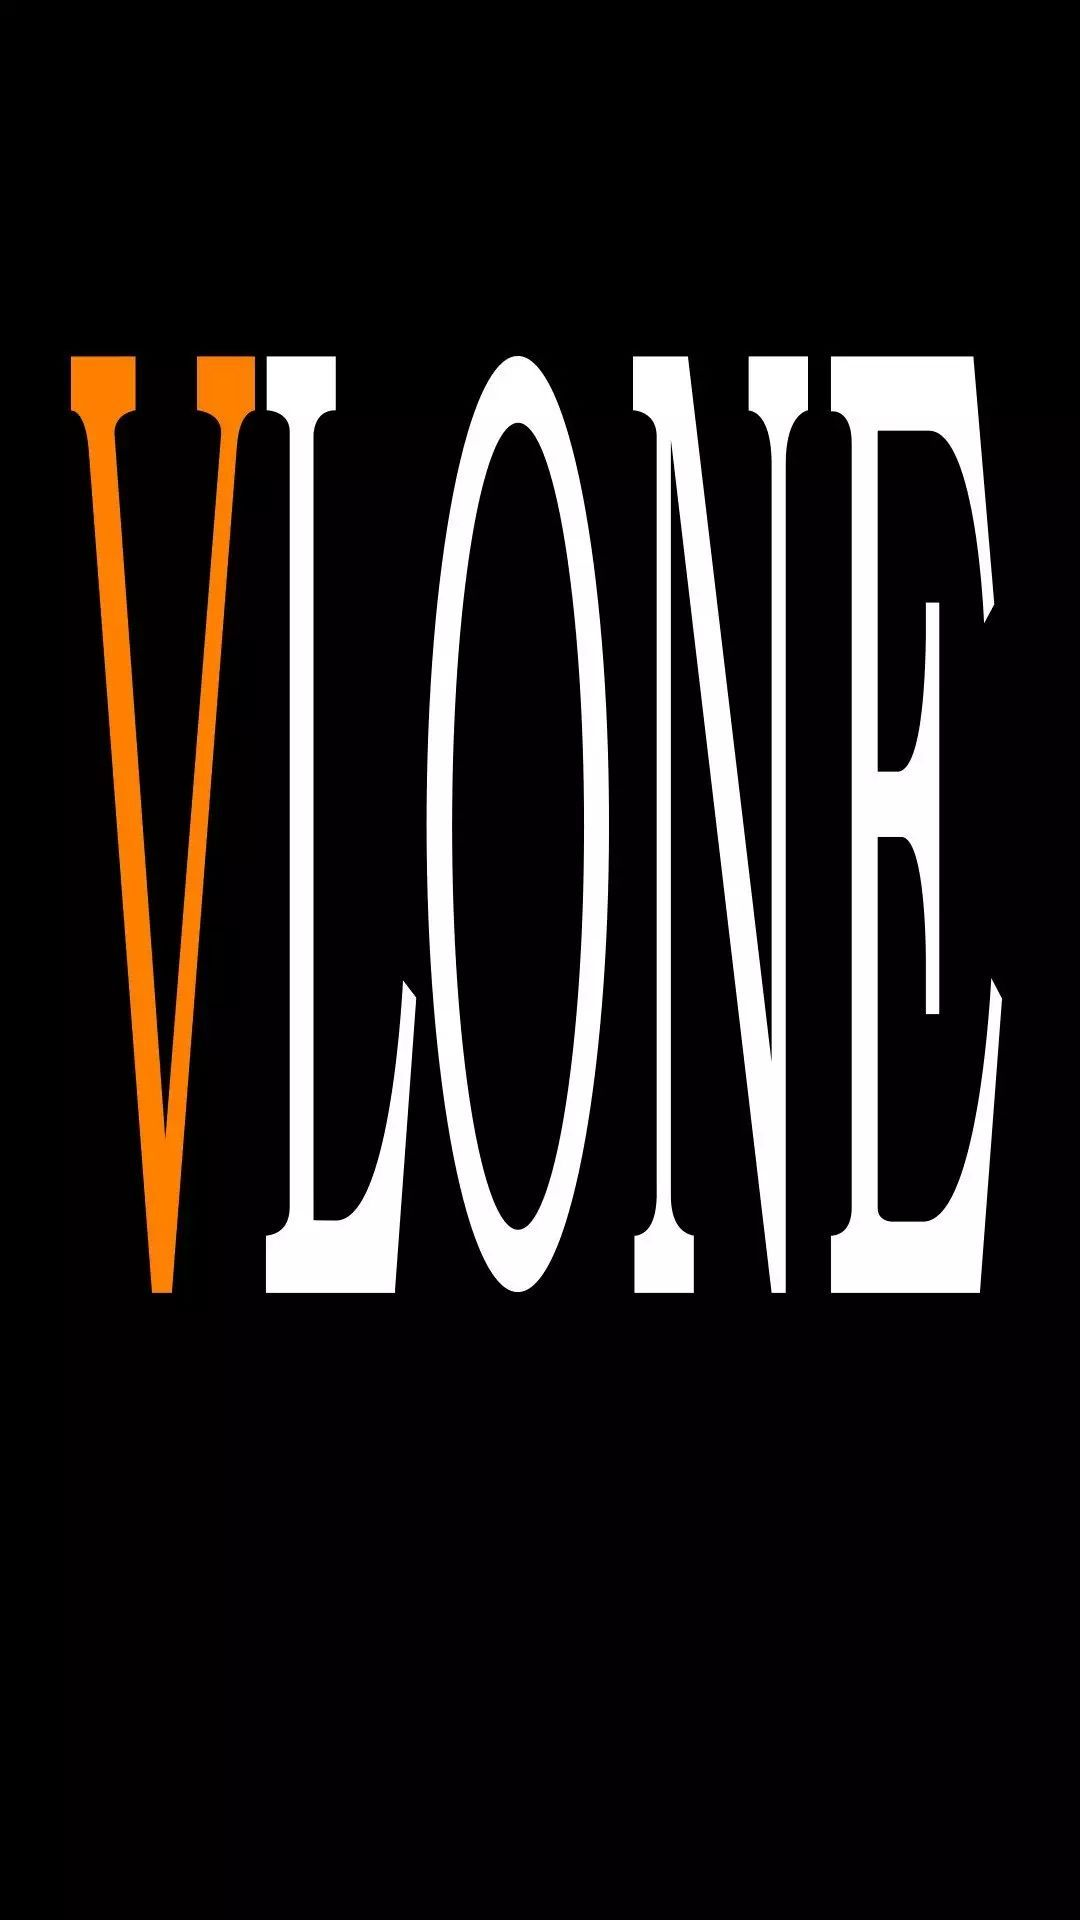 Vlone Wallpapers Top Free Vlone Backgrounds Wallpaperaccess Vlone Logo Iphone Wallpaper Vintage Iphone Wallpaper Off White